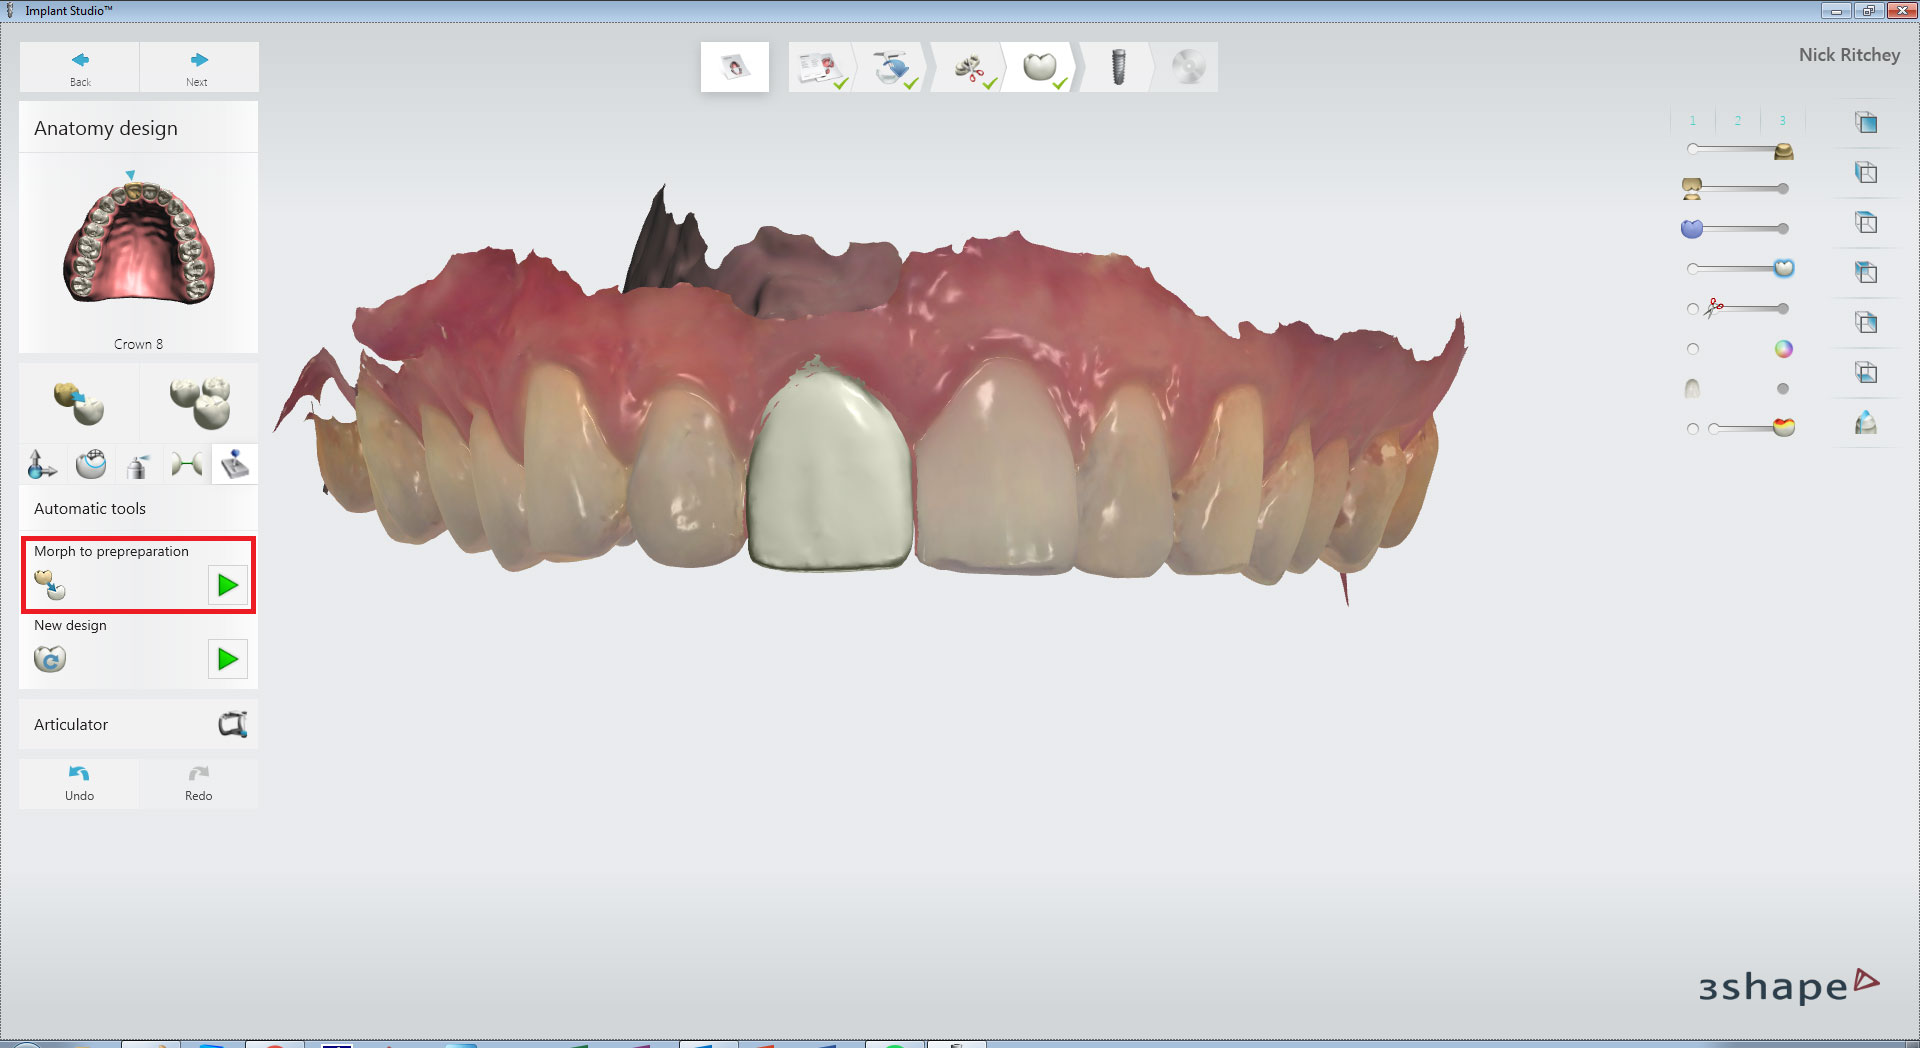 CBCT and Digital Scanning for the Implant Workflow